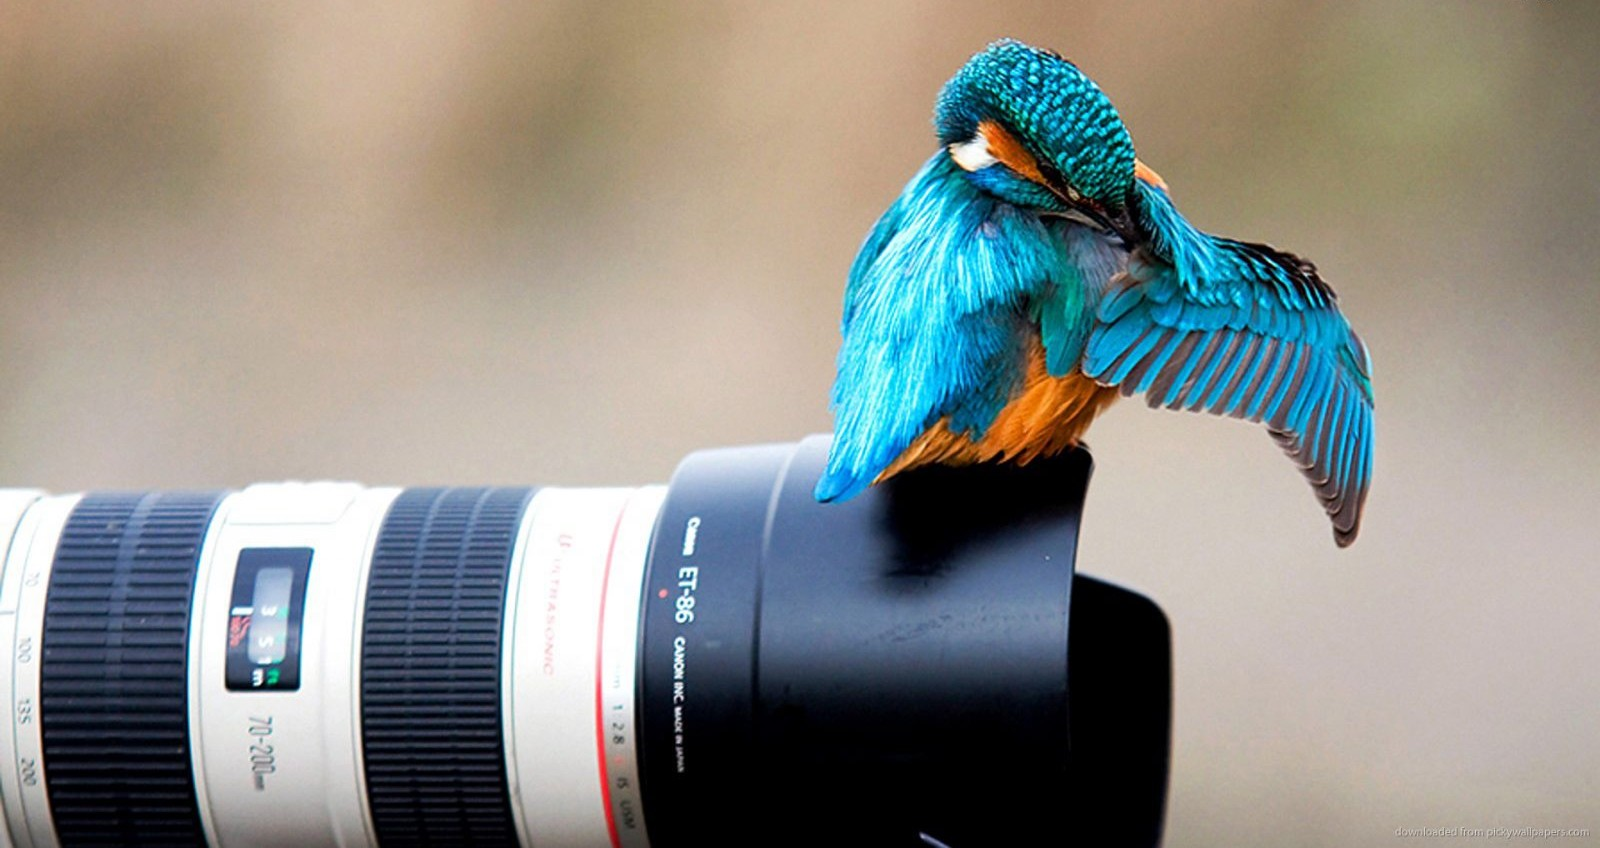 Get the right lens for the job